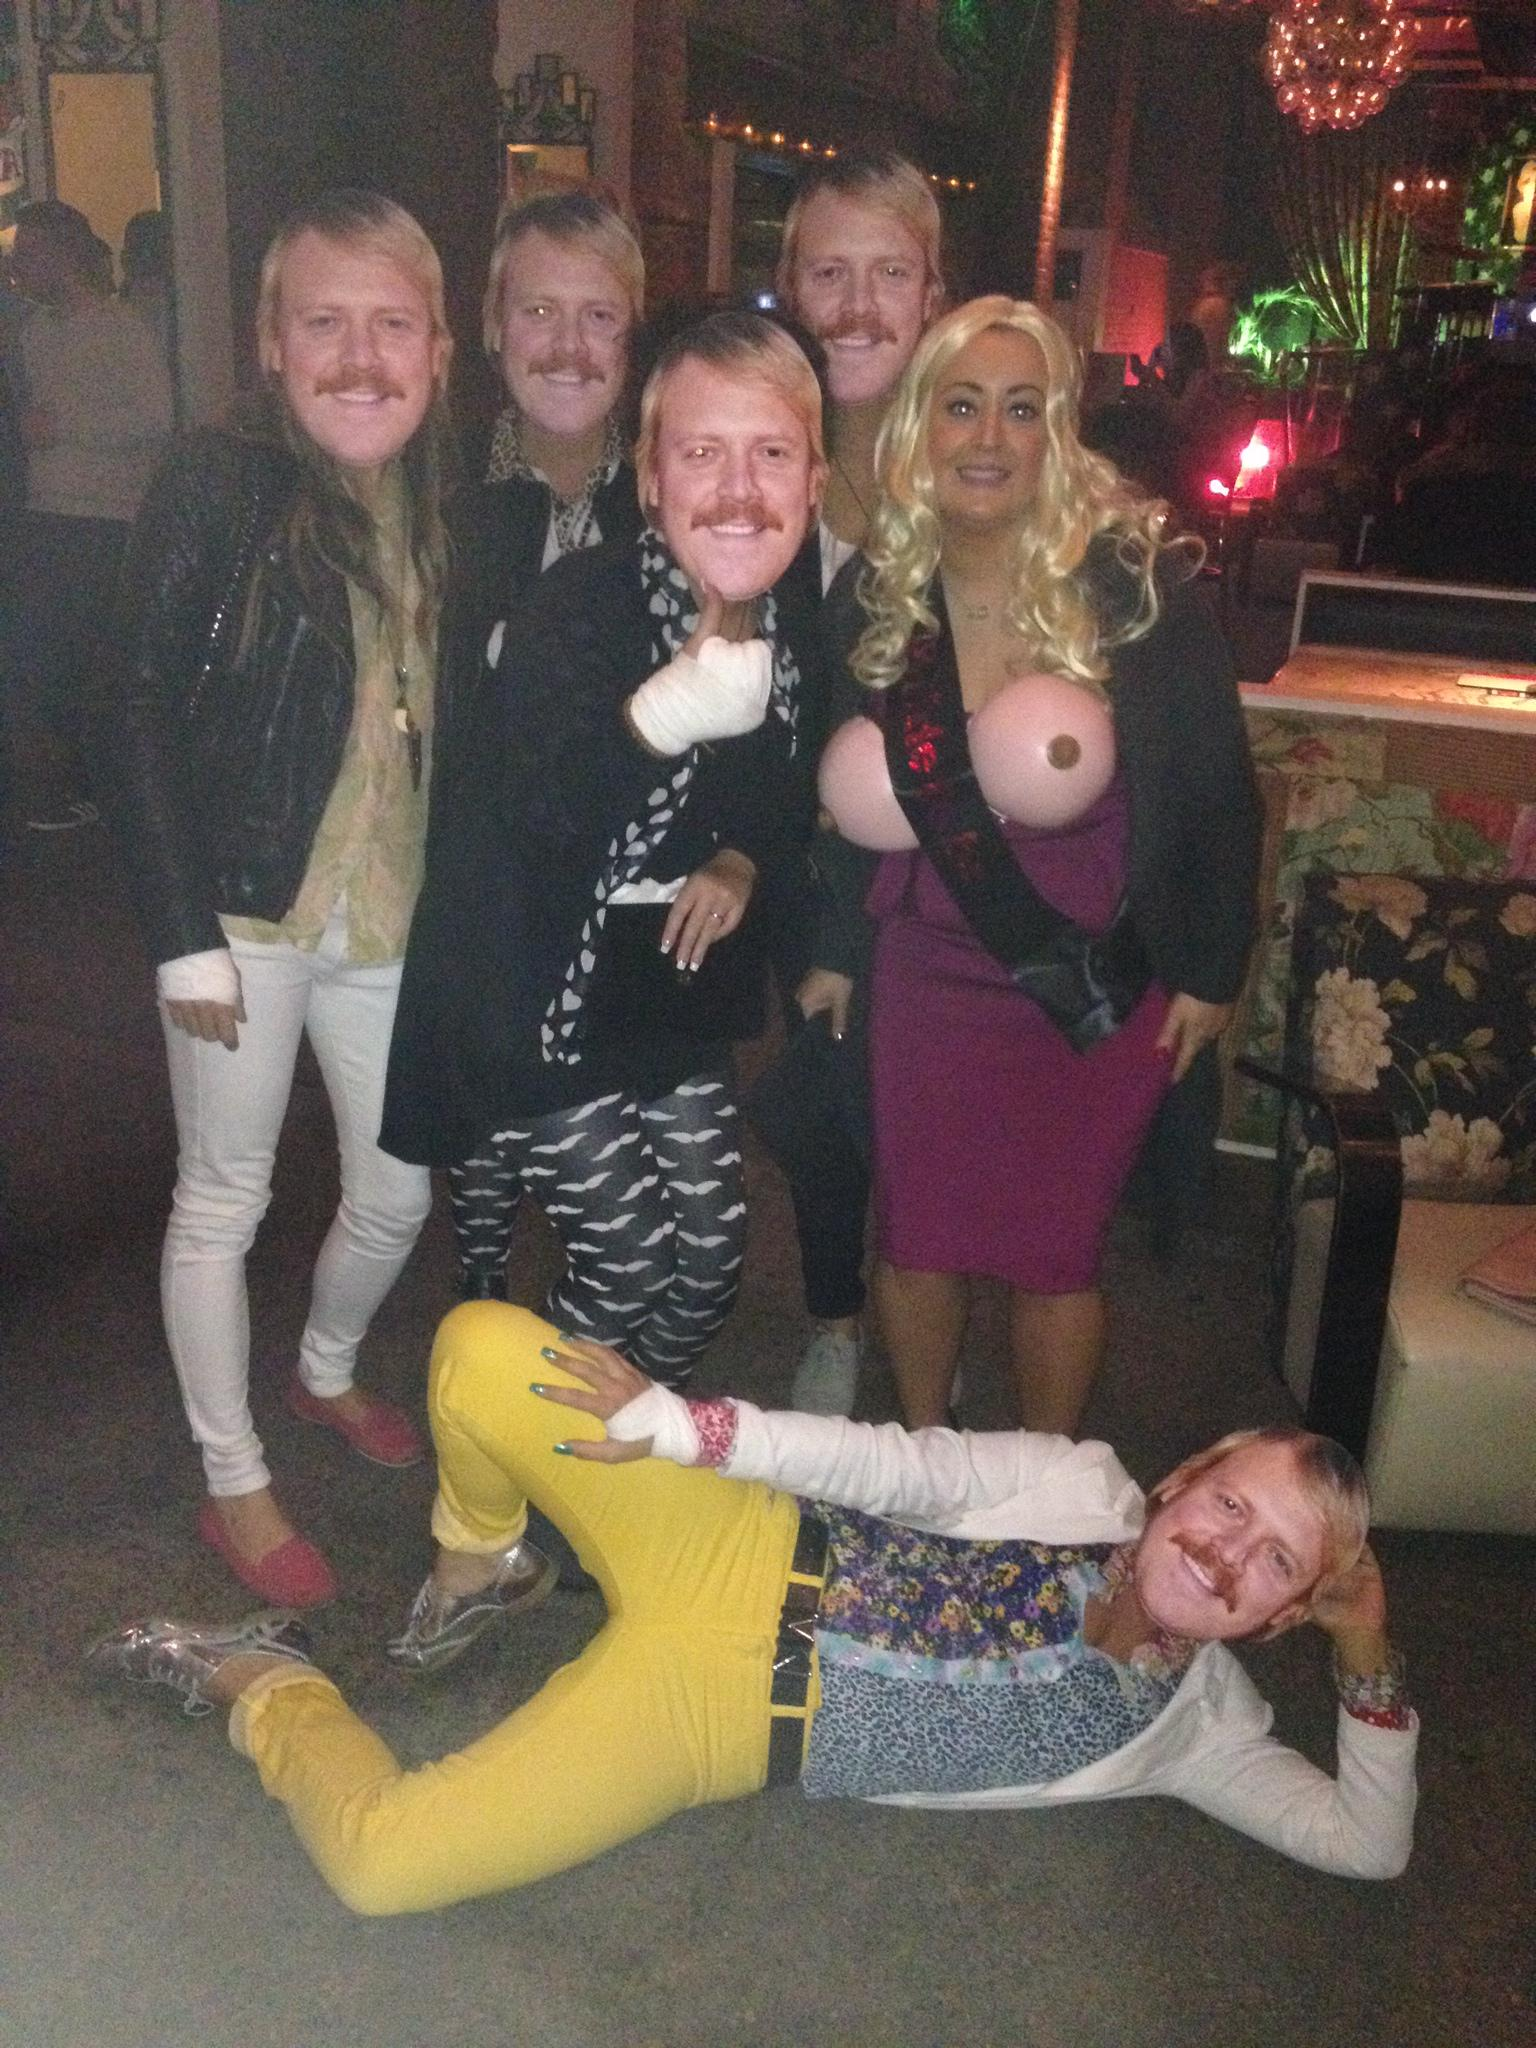 RT @joloevs: We will all be watching #KeithLemonSketchShow tonight at 10pm can't wait @lemontwittor http://t.co/vK1TedKGeI